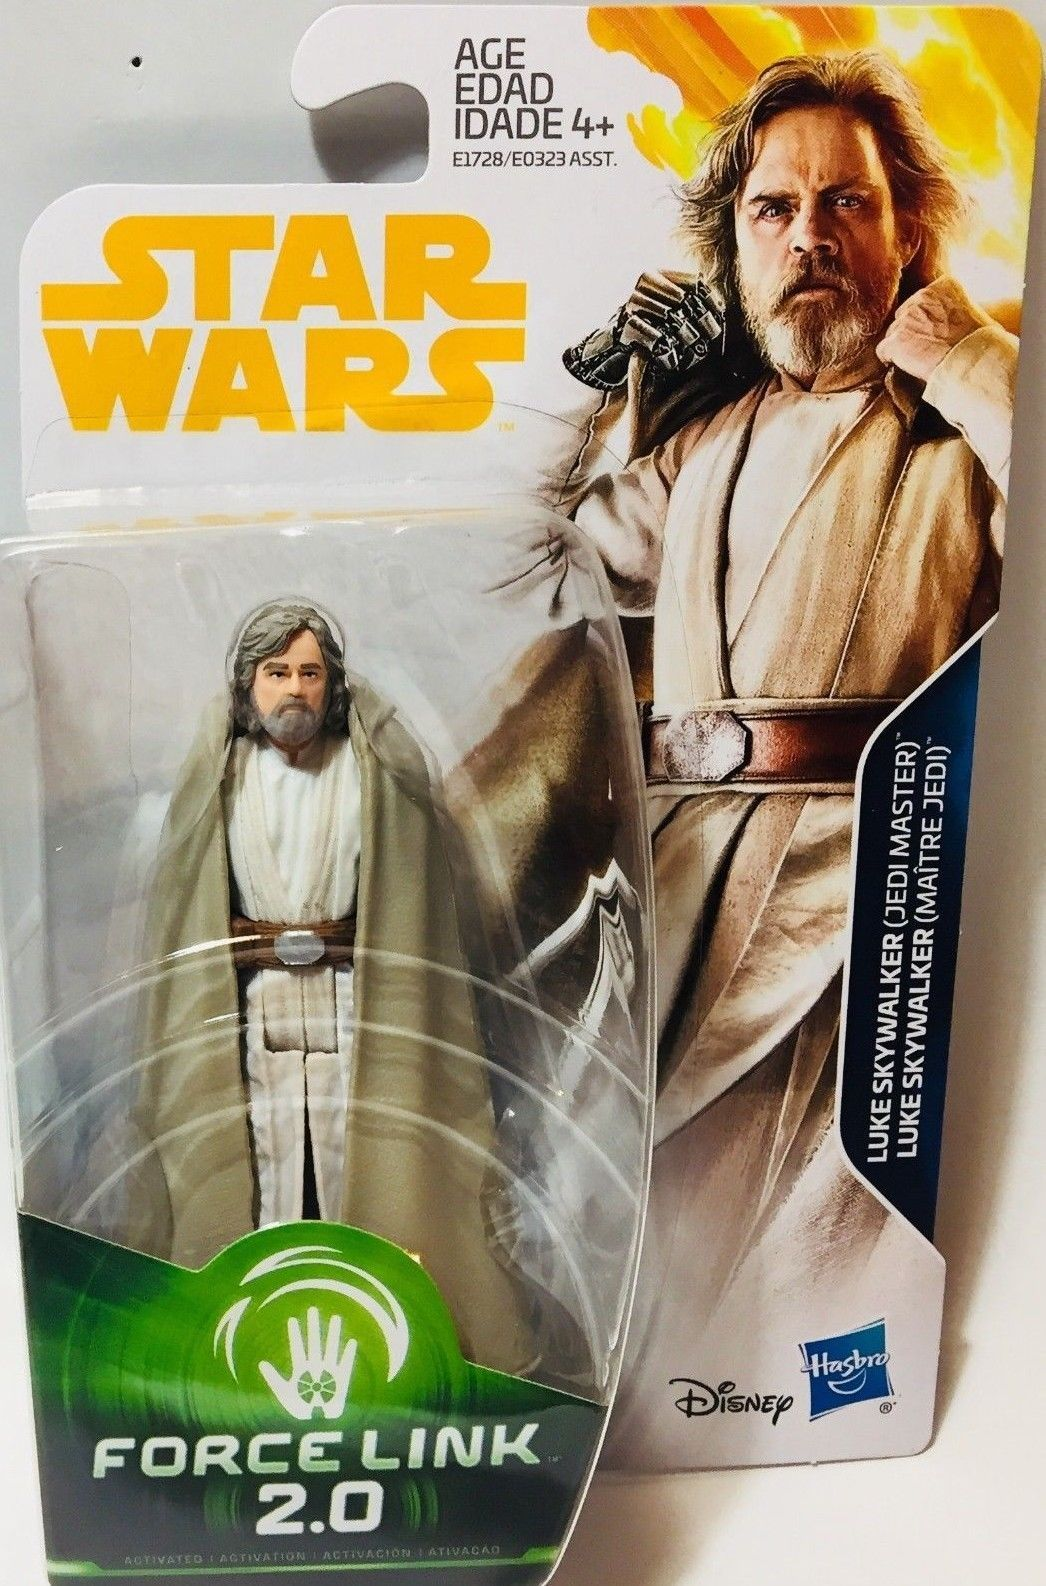 "Star Wars-Le dernier Jedi 3.75/"" figurines avec forcelink activation"